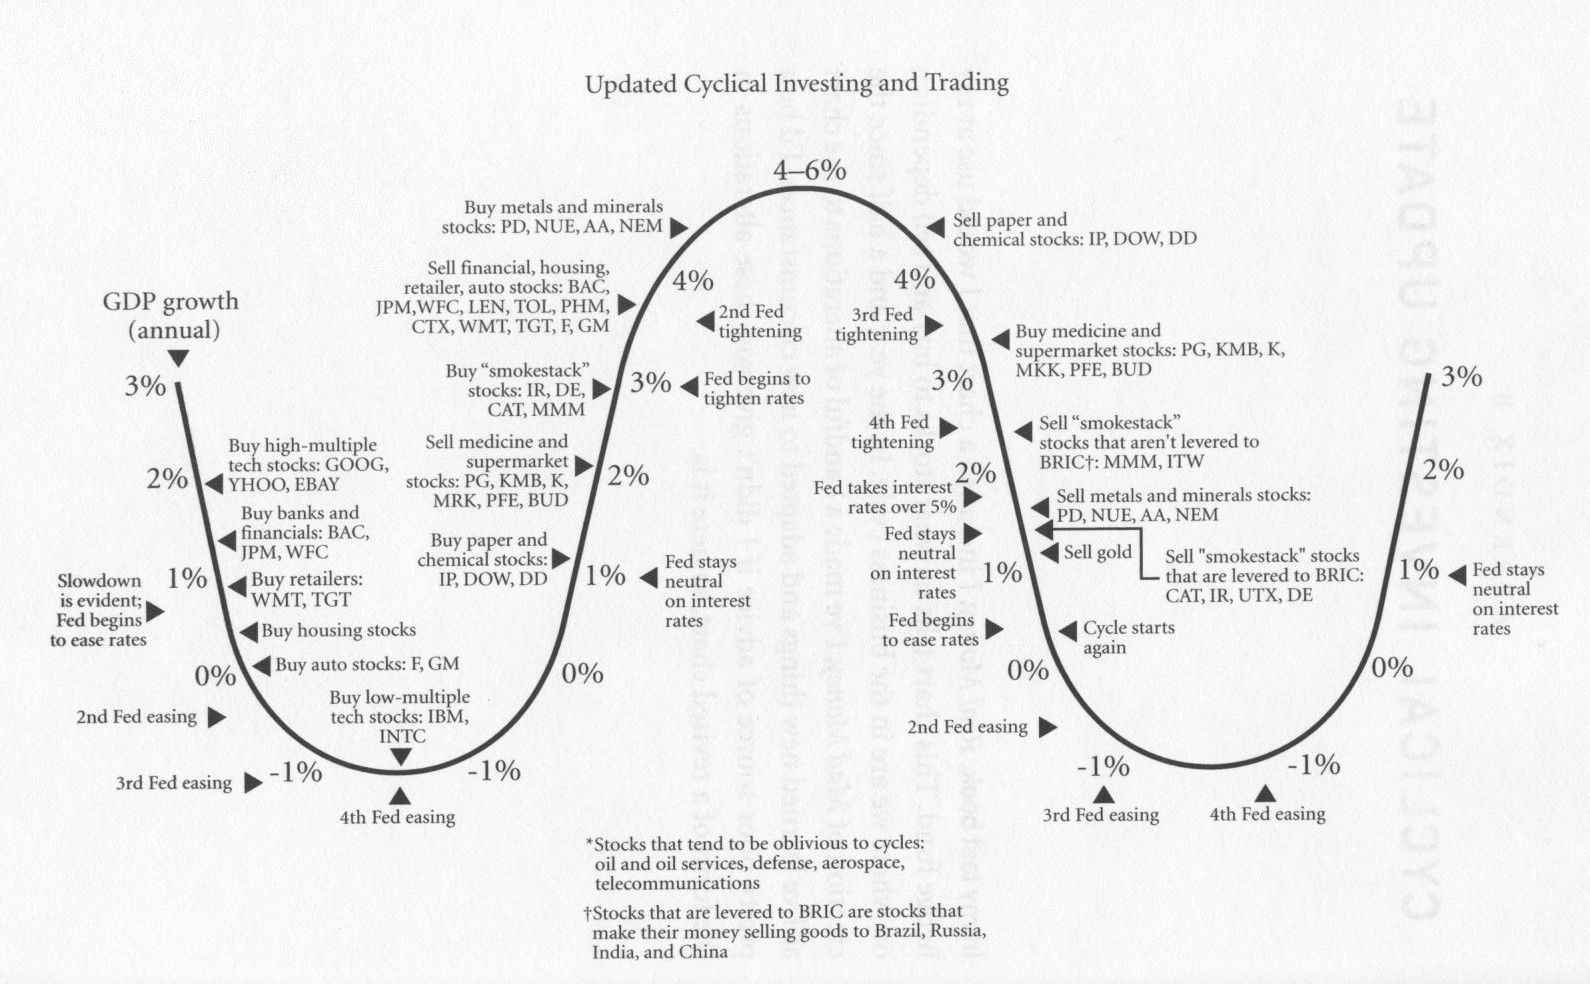 Cyclical Investing and Trading Cycle